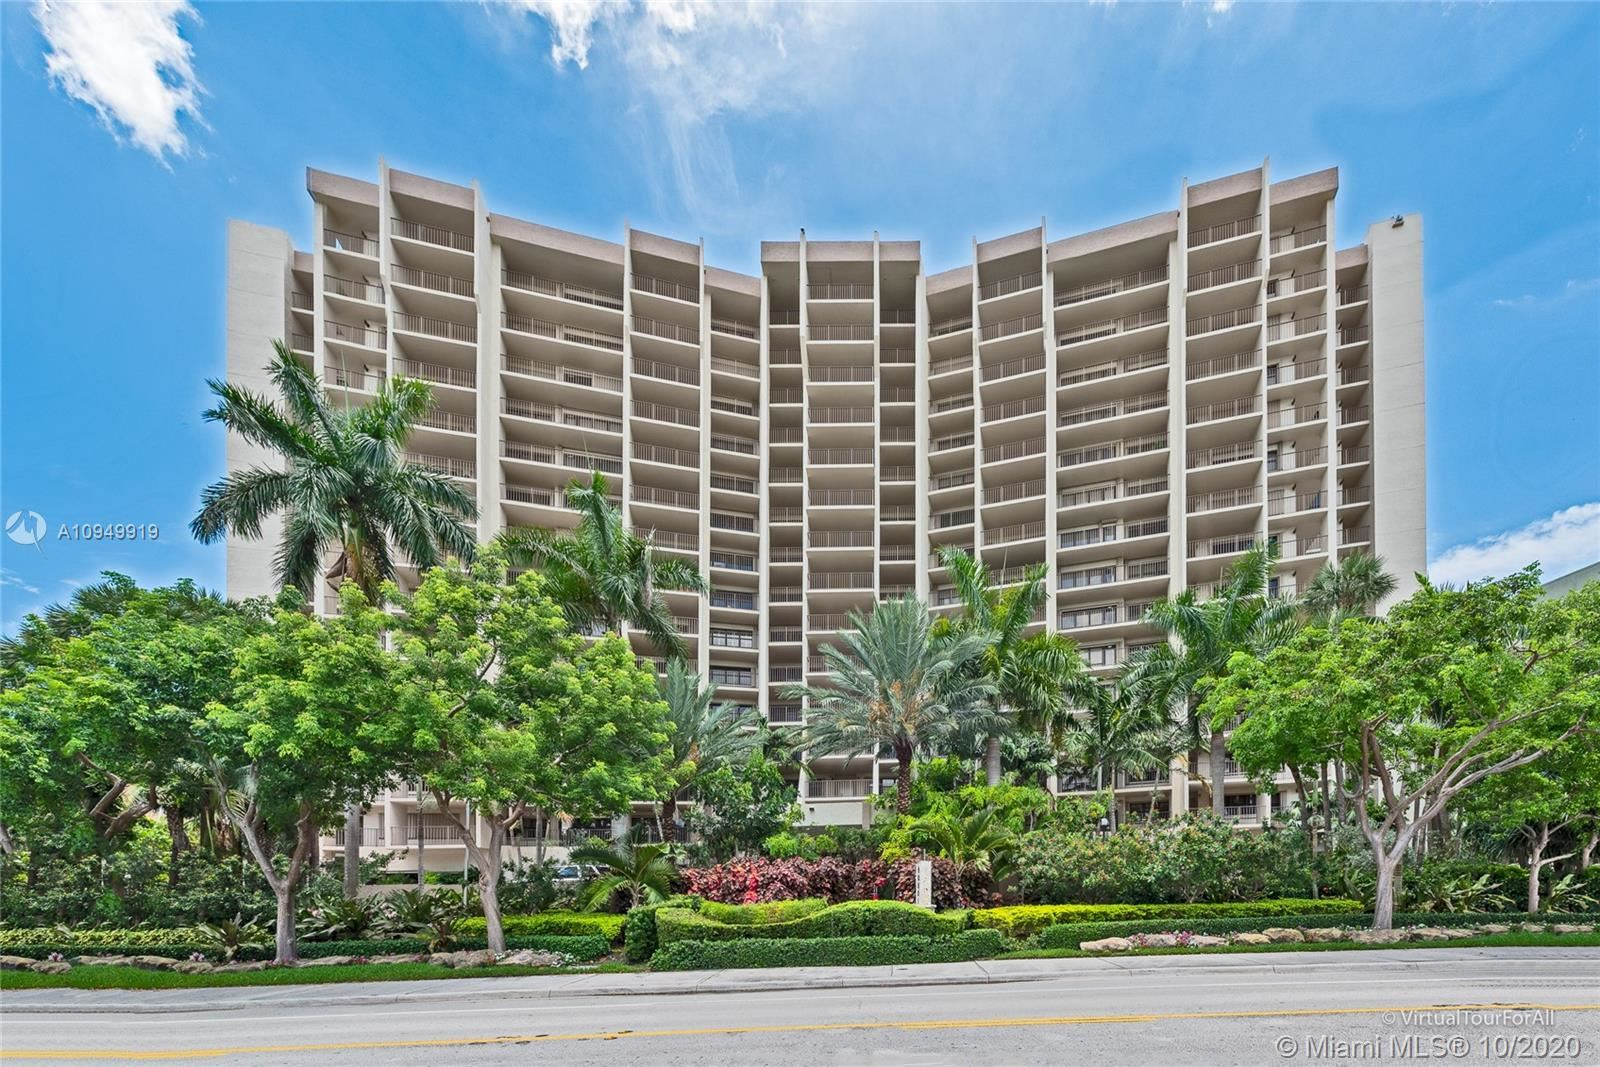 Photo of 1800 S Ocean Blvd #1501, Lauderdale By The Sea, FL 33062 (MLS # A10949919)